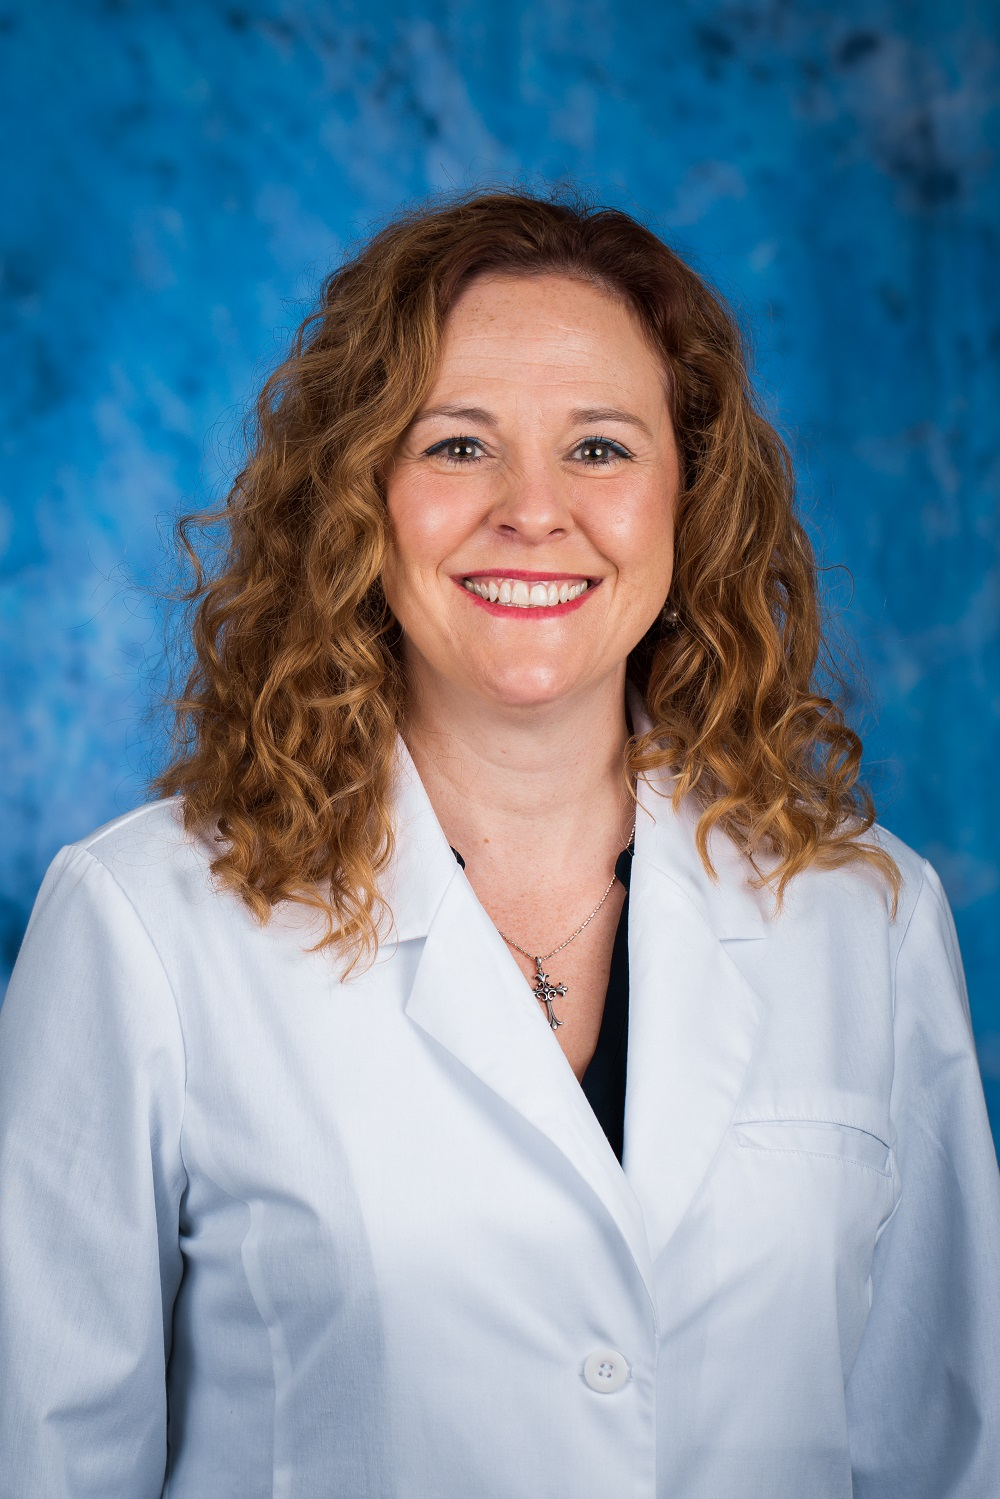 Joye Sexton, NP of Knoxville Digestive Disease Consultants